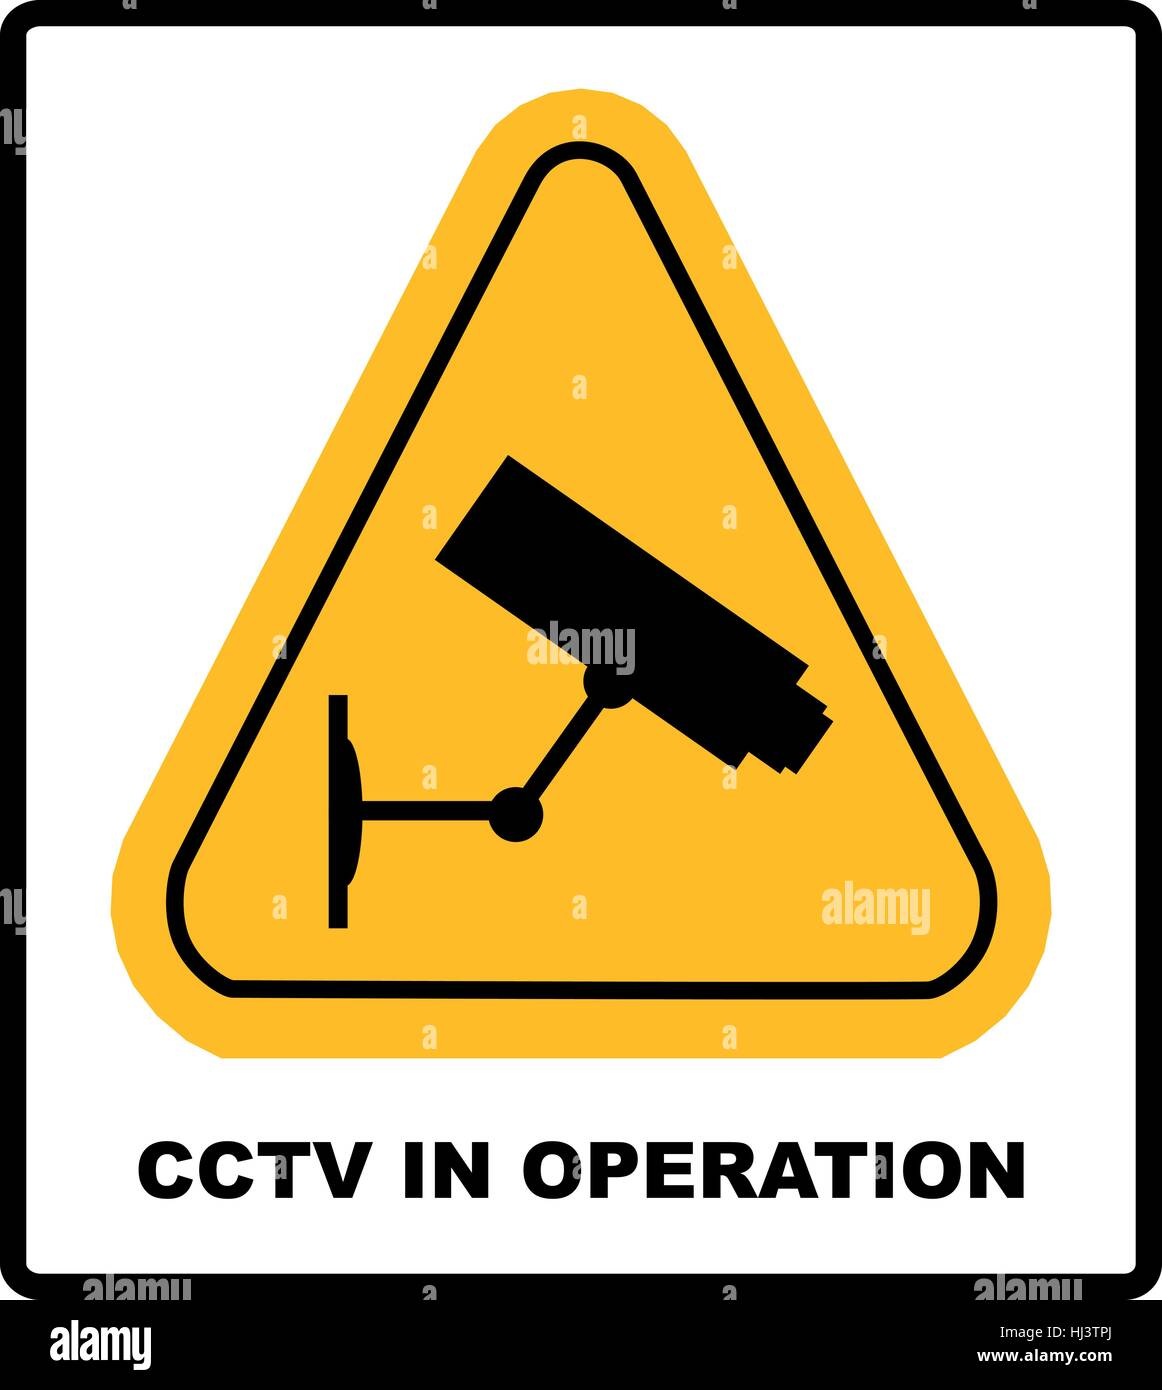 Cctv In Operation Sign Security Camera In Yellow Triangle Isolated